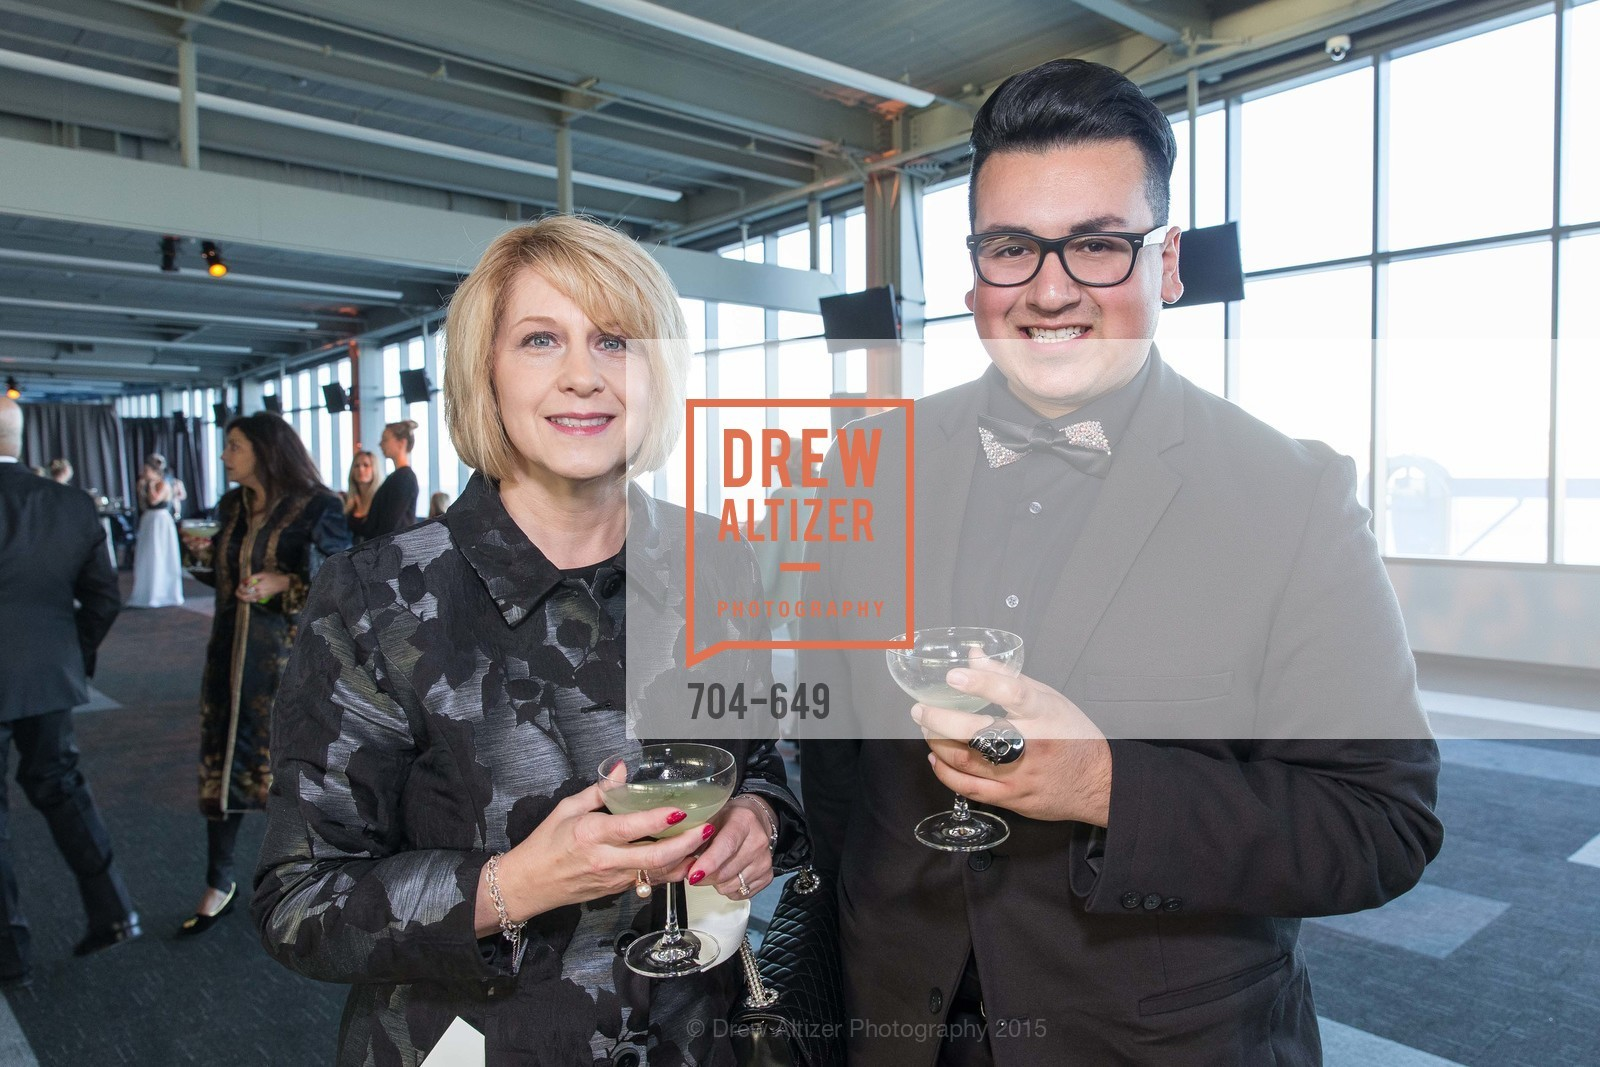 Lisa Li, Leonel Rojas, Fashion Forward: An Evening with Erdem presented by SF Opera Guild and Saks Fifth Avenue, Pier 27. Pier 27, The Embarcadero, March 25th, 2015,Drew Altizer, Drew Altizer Photography, full-service agency, private events, San Francisco photographer, photographer california